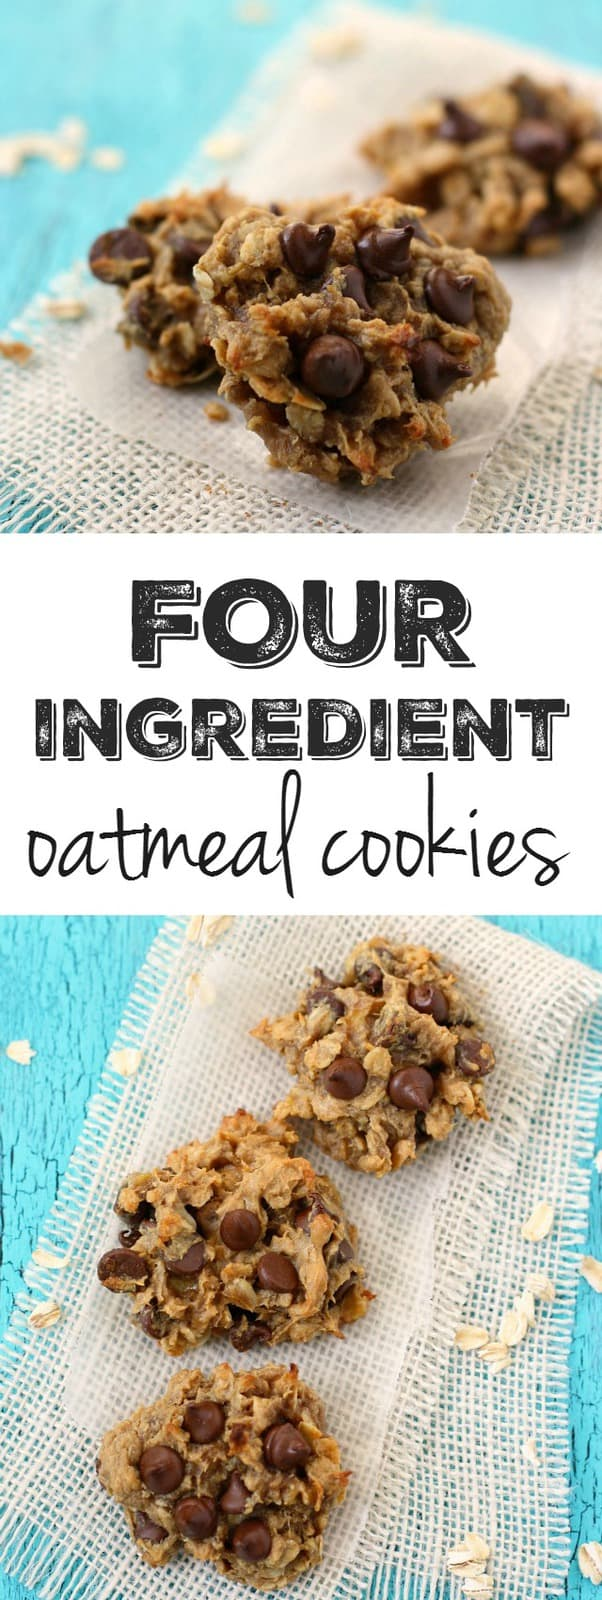 Four ingredient HEALTHY oatmeal cookies are a delicious dessert or snack! #vegan #glutenfree #dairyfree